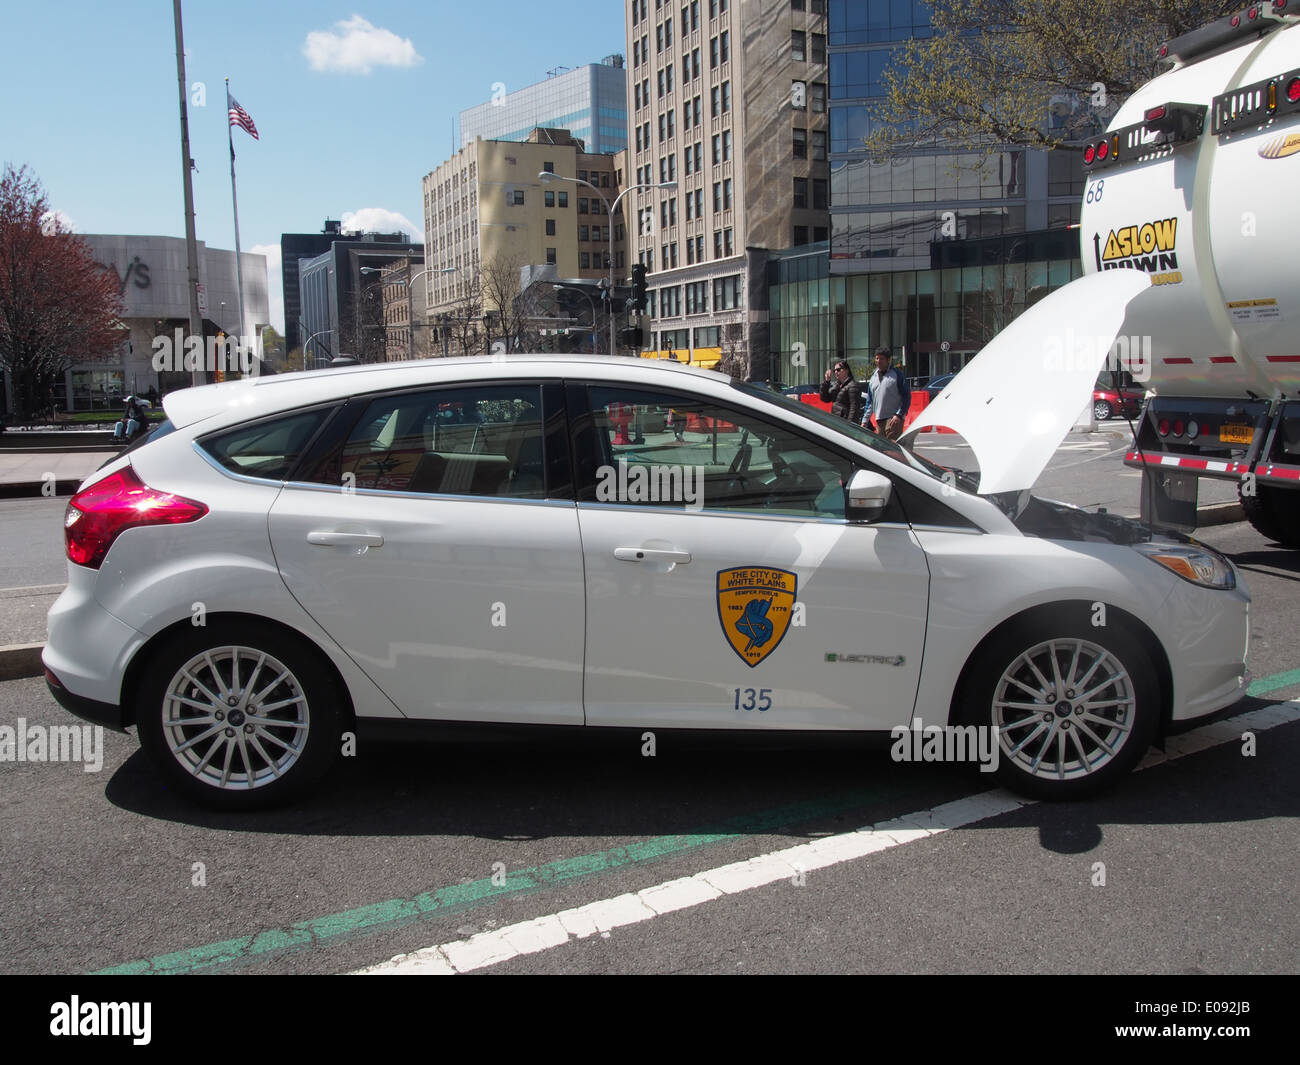 Electric police car on display at an Earth Day festival in White Plains, NY, April 26, 2014, © Katharine Andriotis - Stock Image